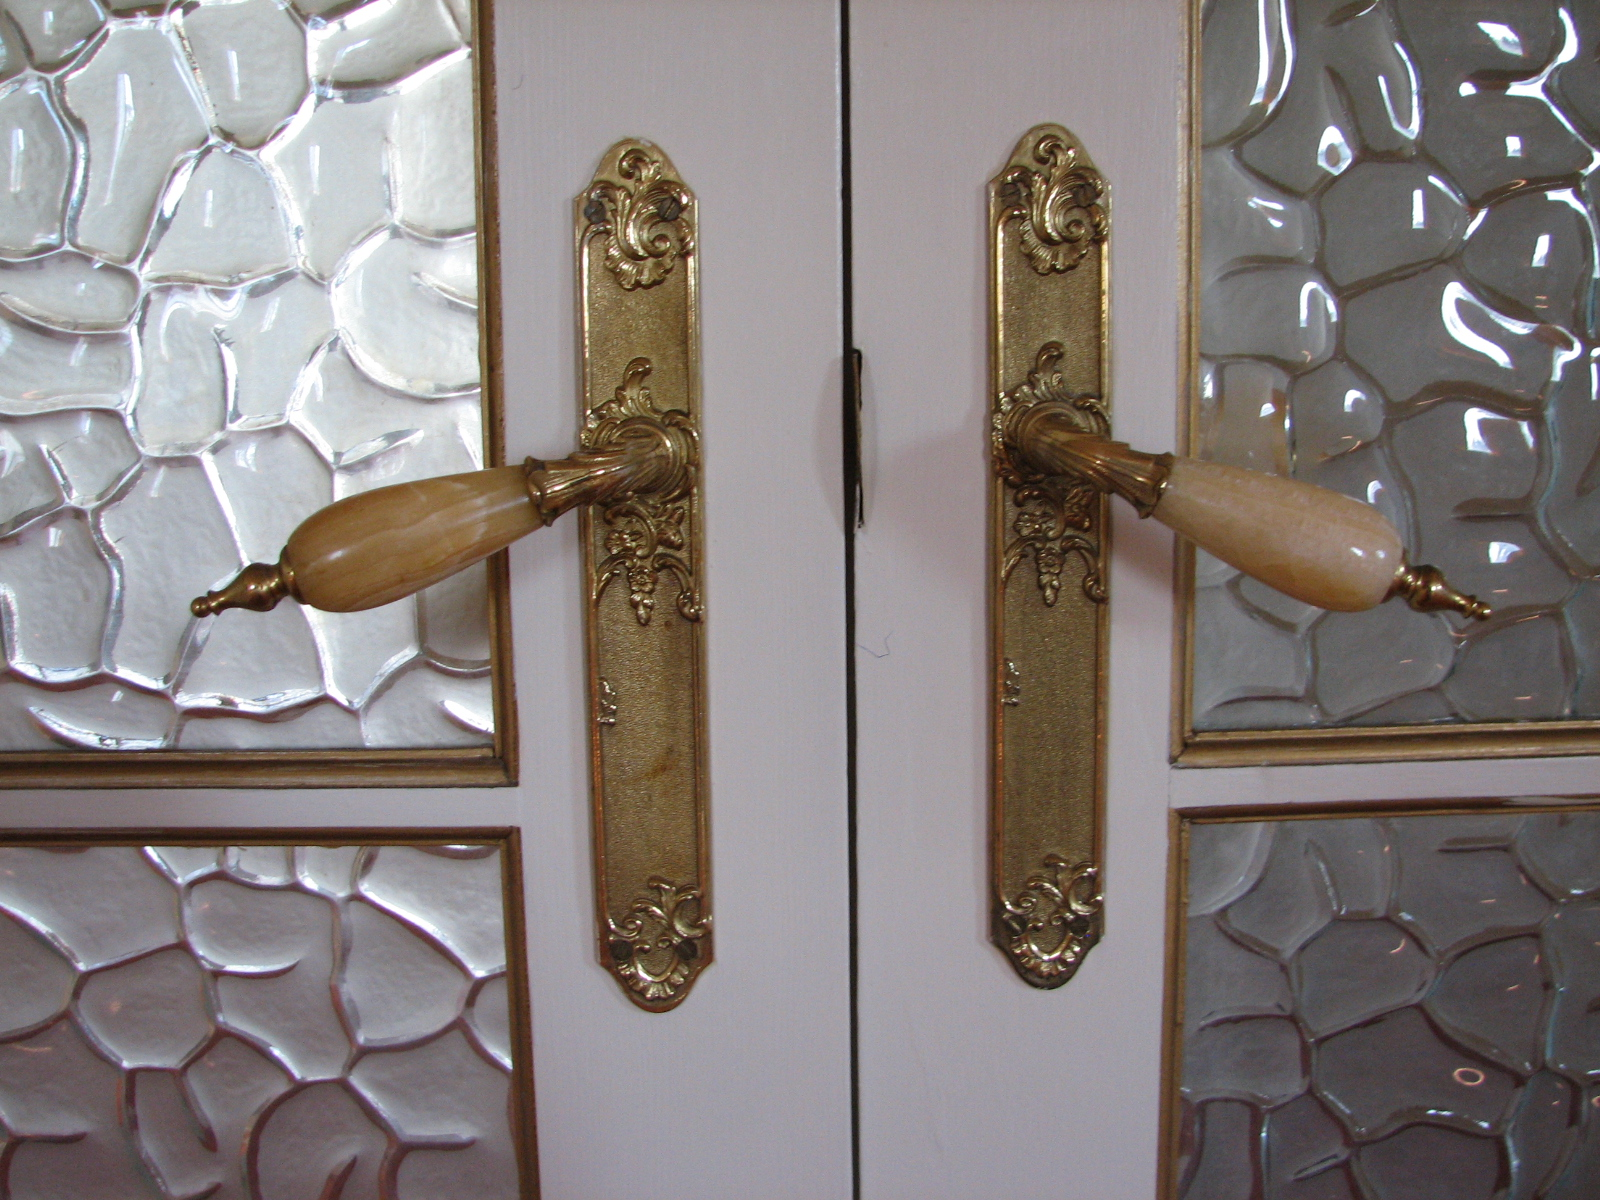 Vintage interior door handles emphasize the aristocracy of such door design